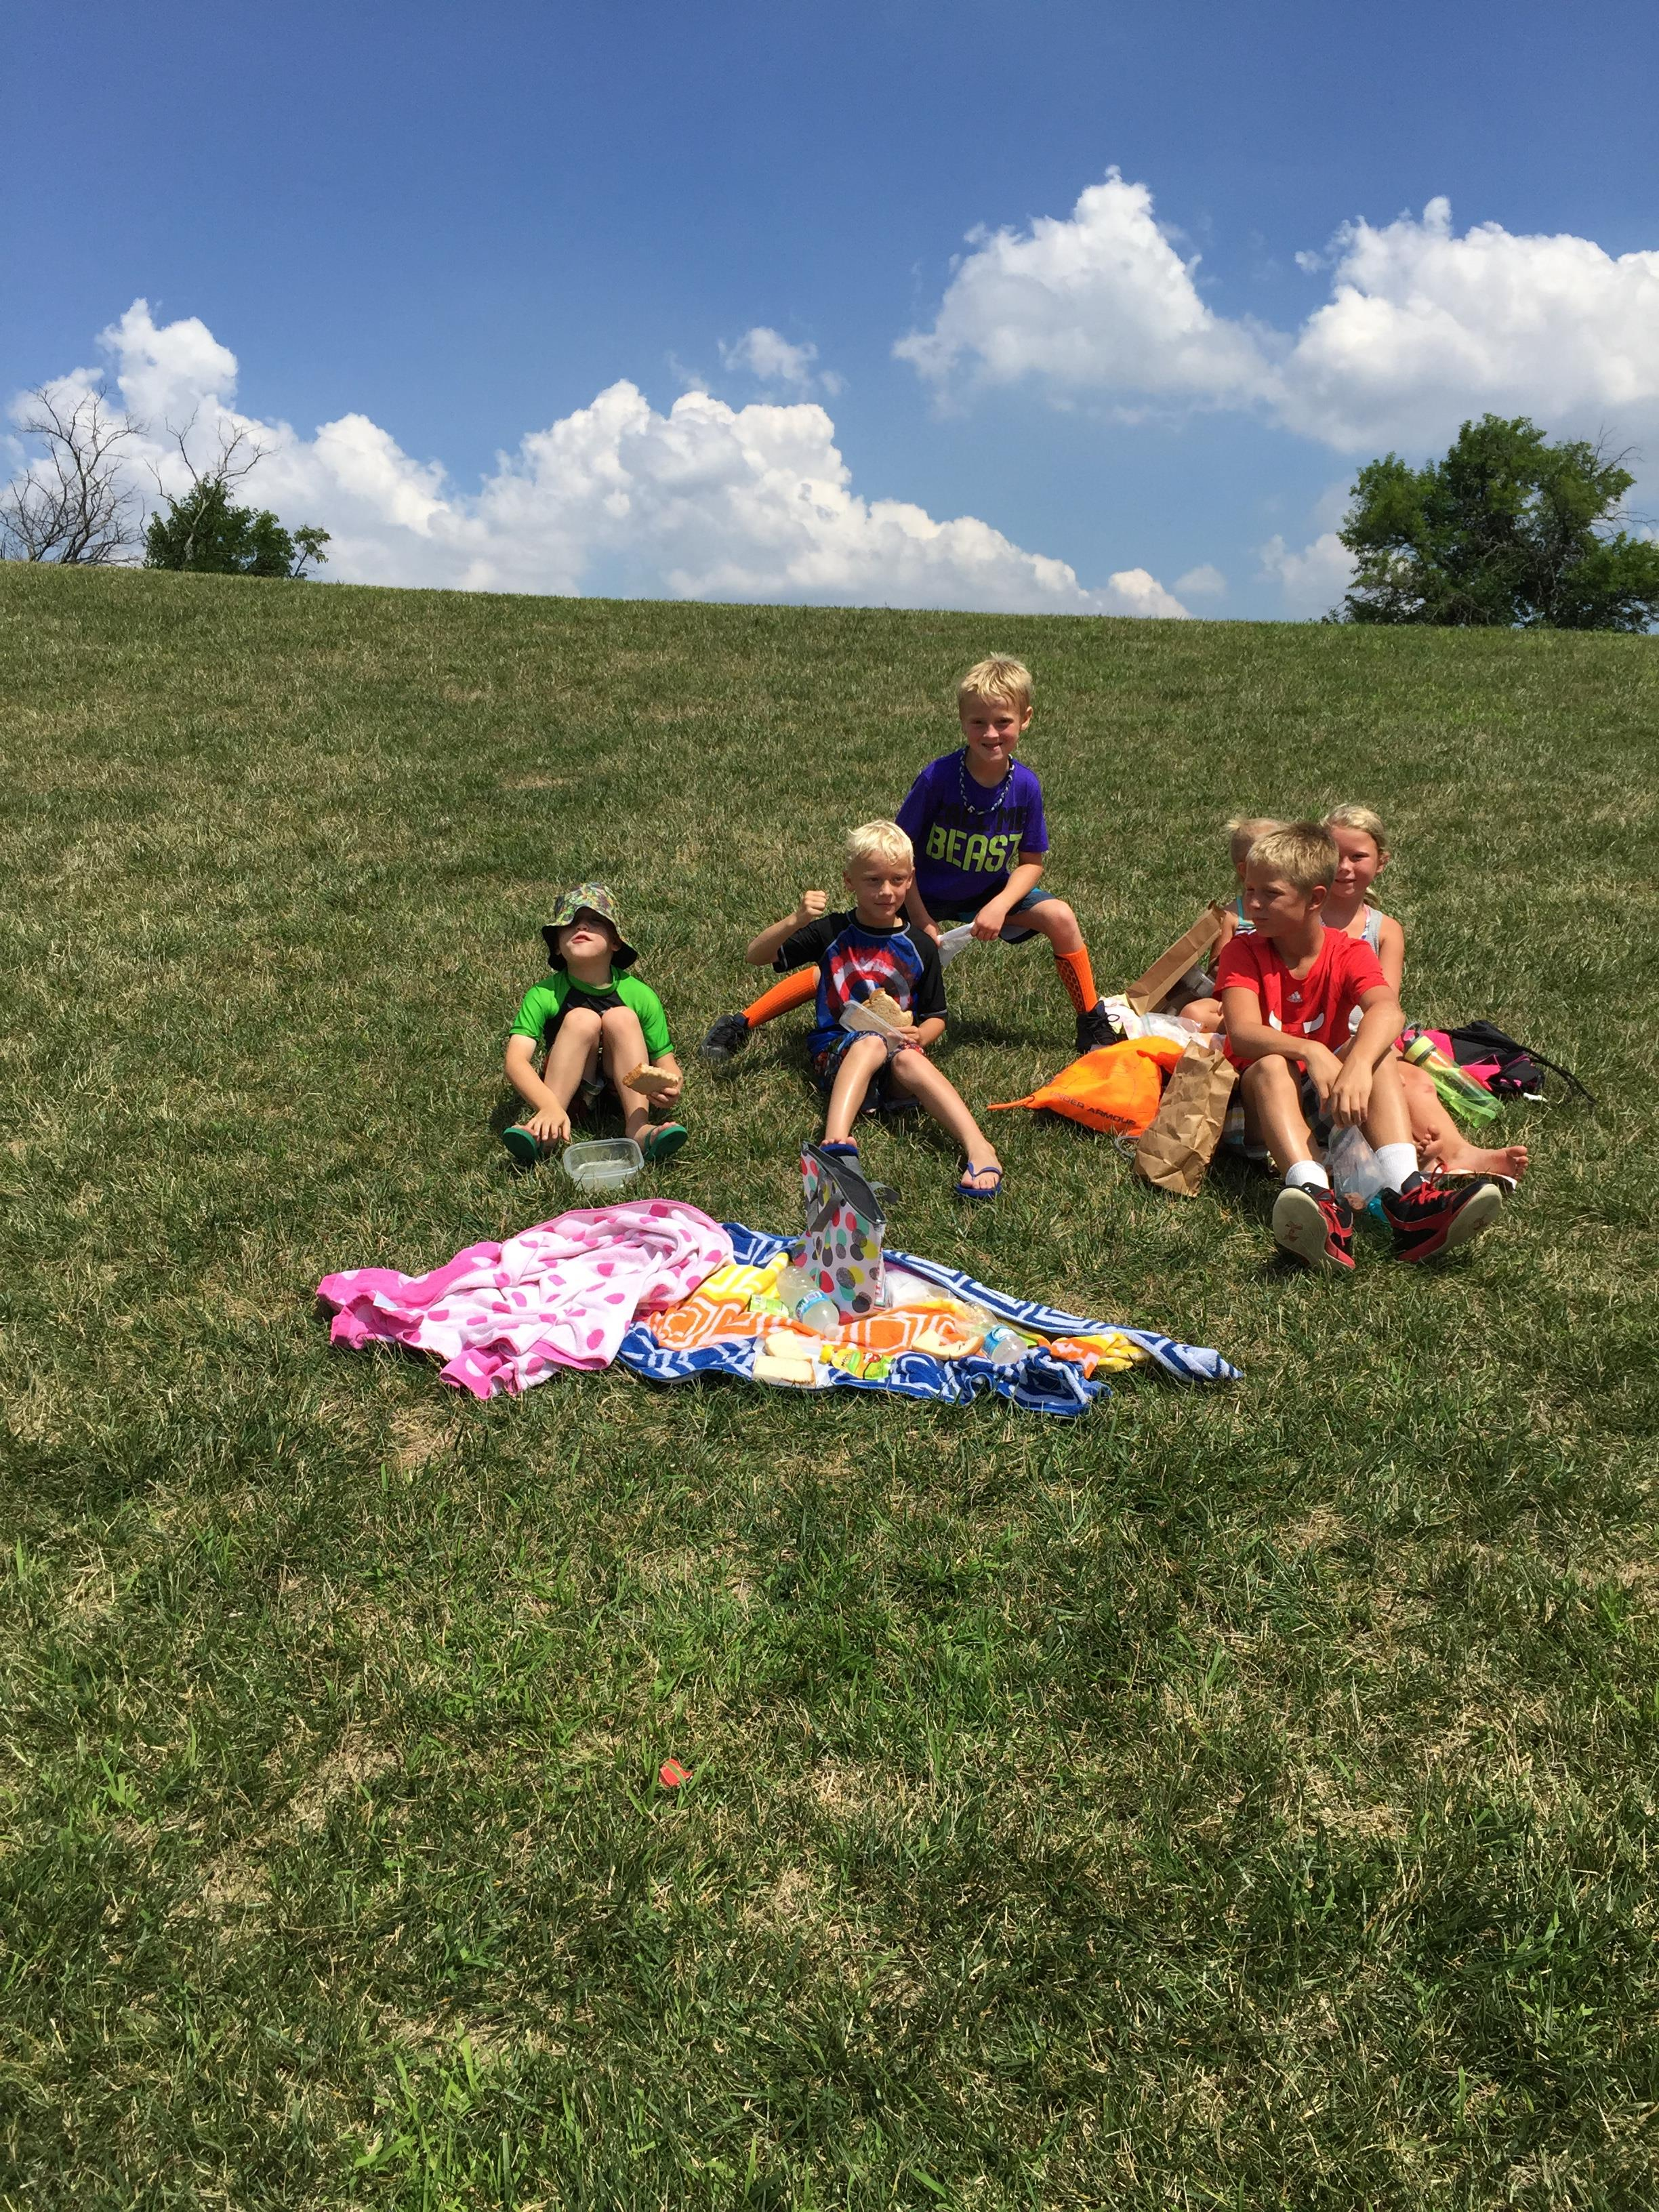 July 27, 2016 St. John Splash Pad Play Date